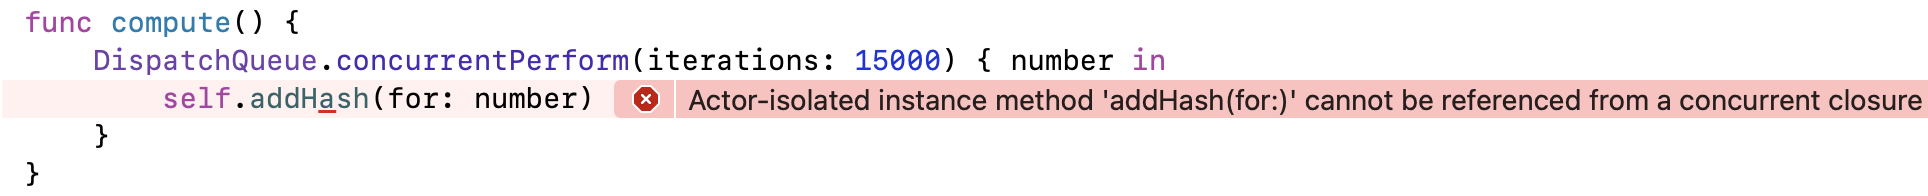 Data race compile error message in Xcode